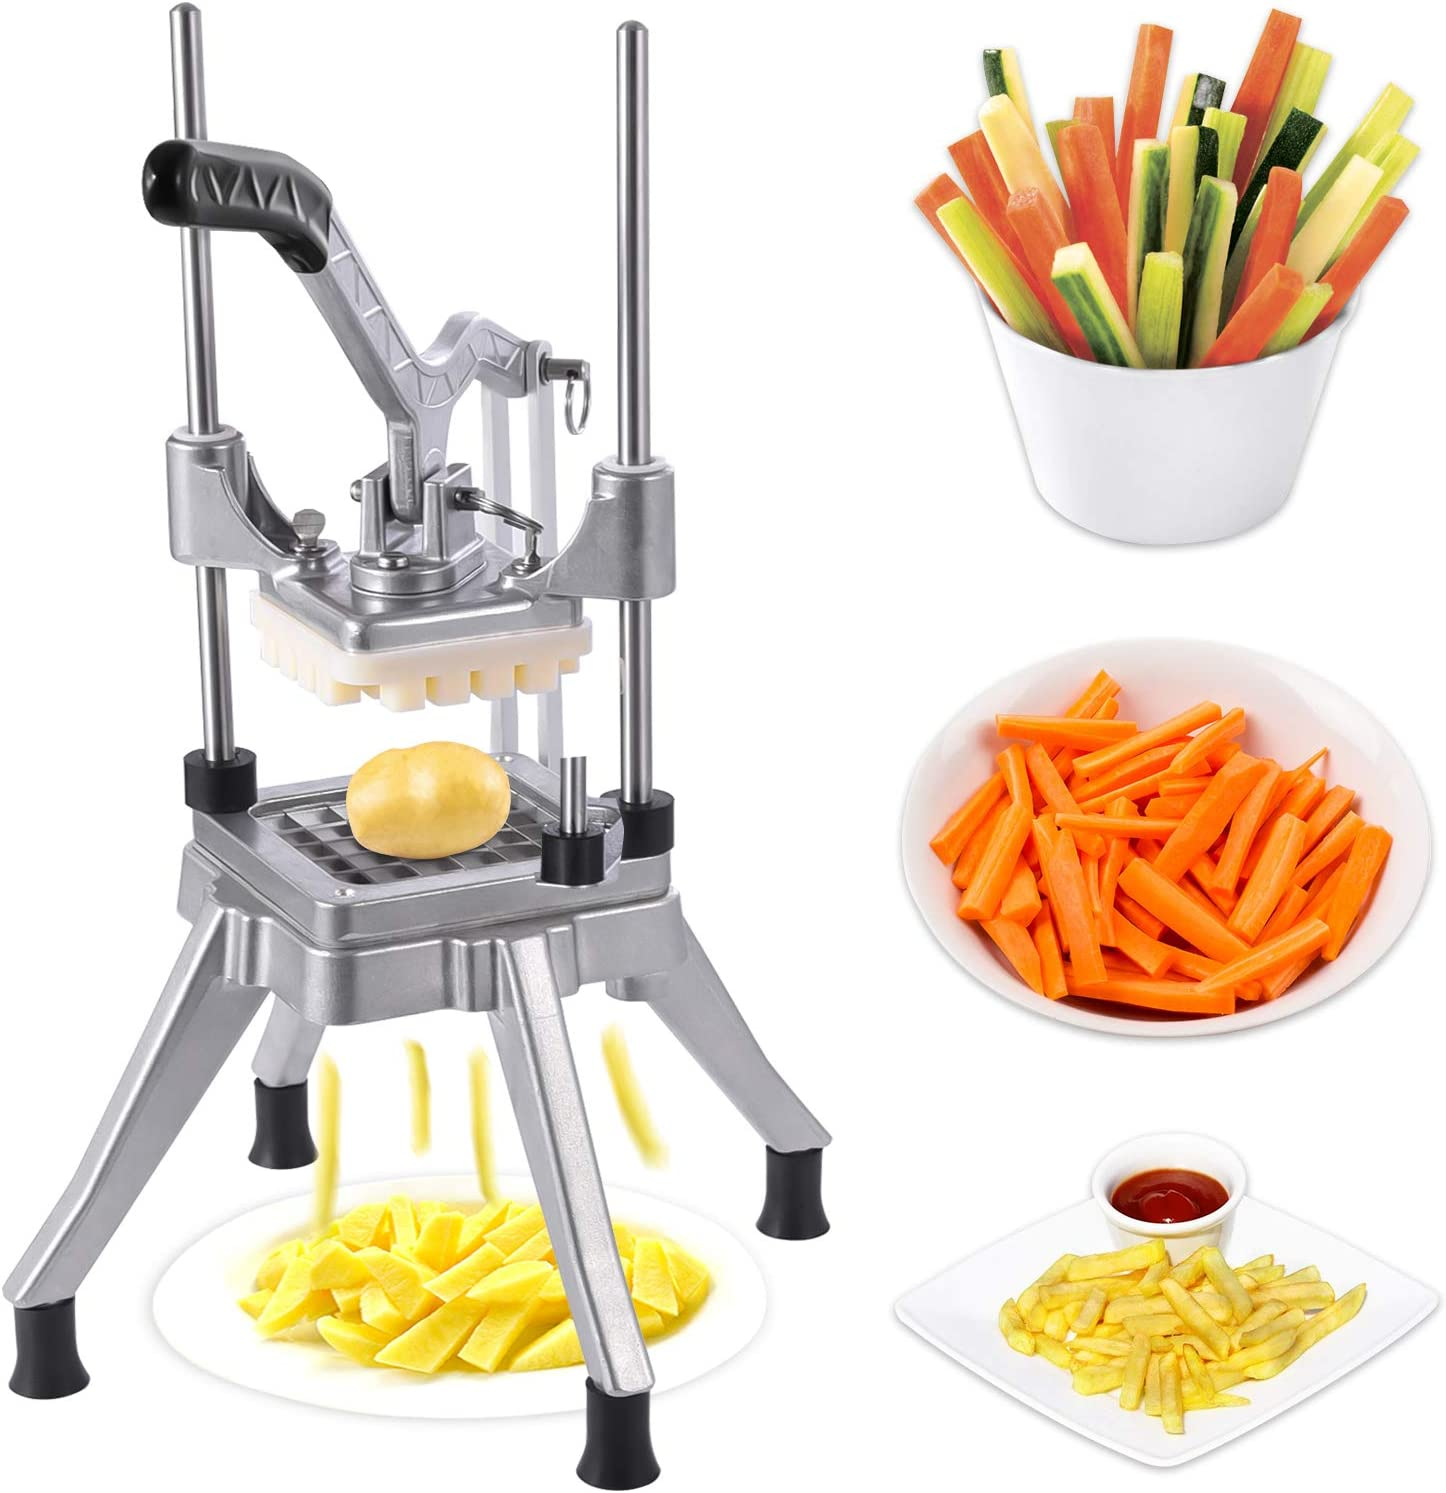 Commercial Vegetable Fruit Chopper, Heavy Duty Stainless Steel Professional Food Dicer Kattex French Fry Cutter For Onion, Peppers, Potato, Tomato, Mushroom (1/2'')